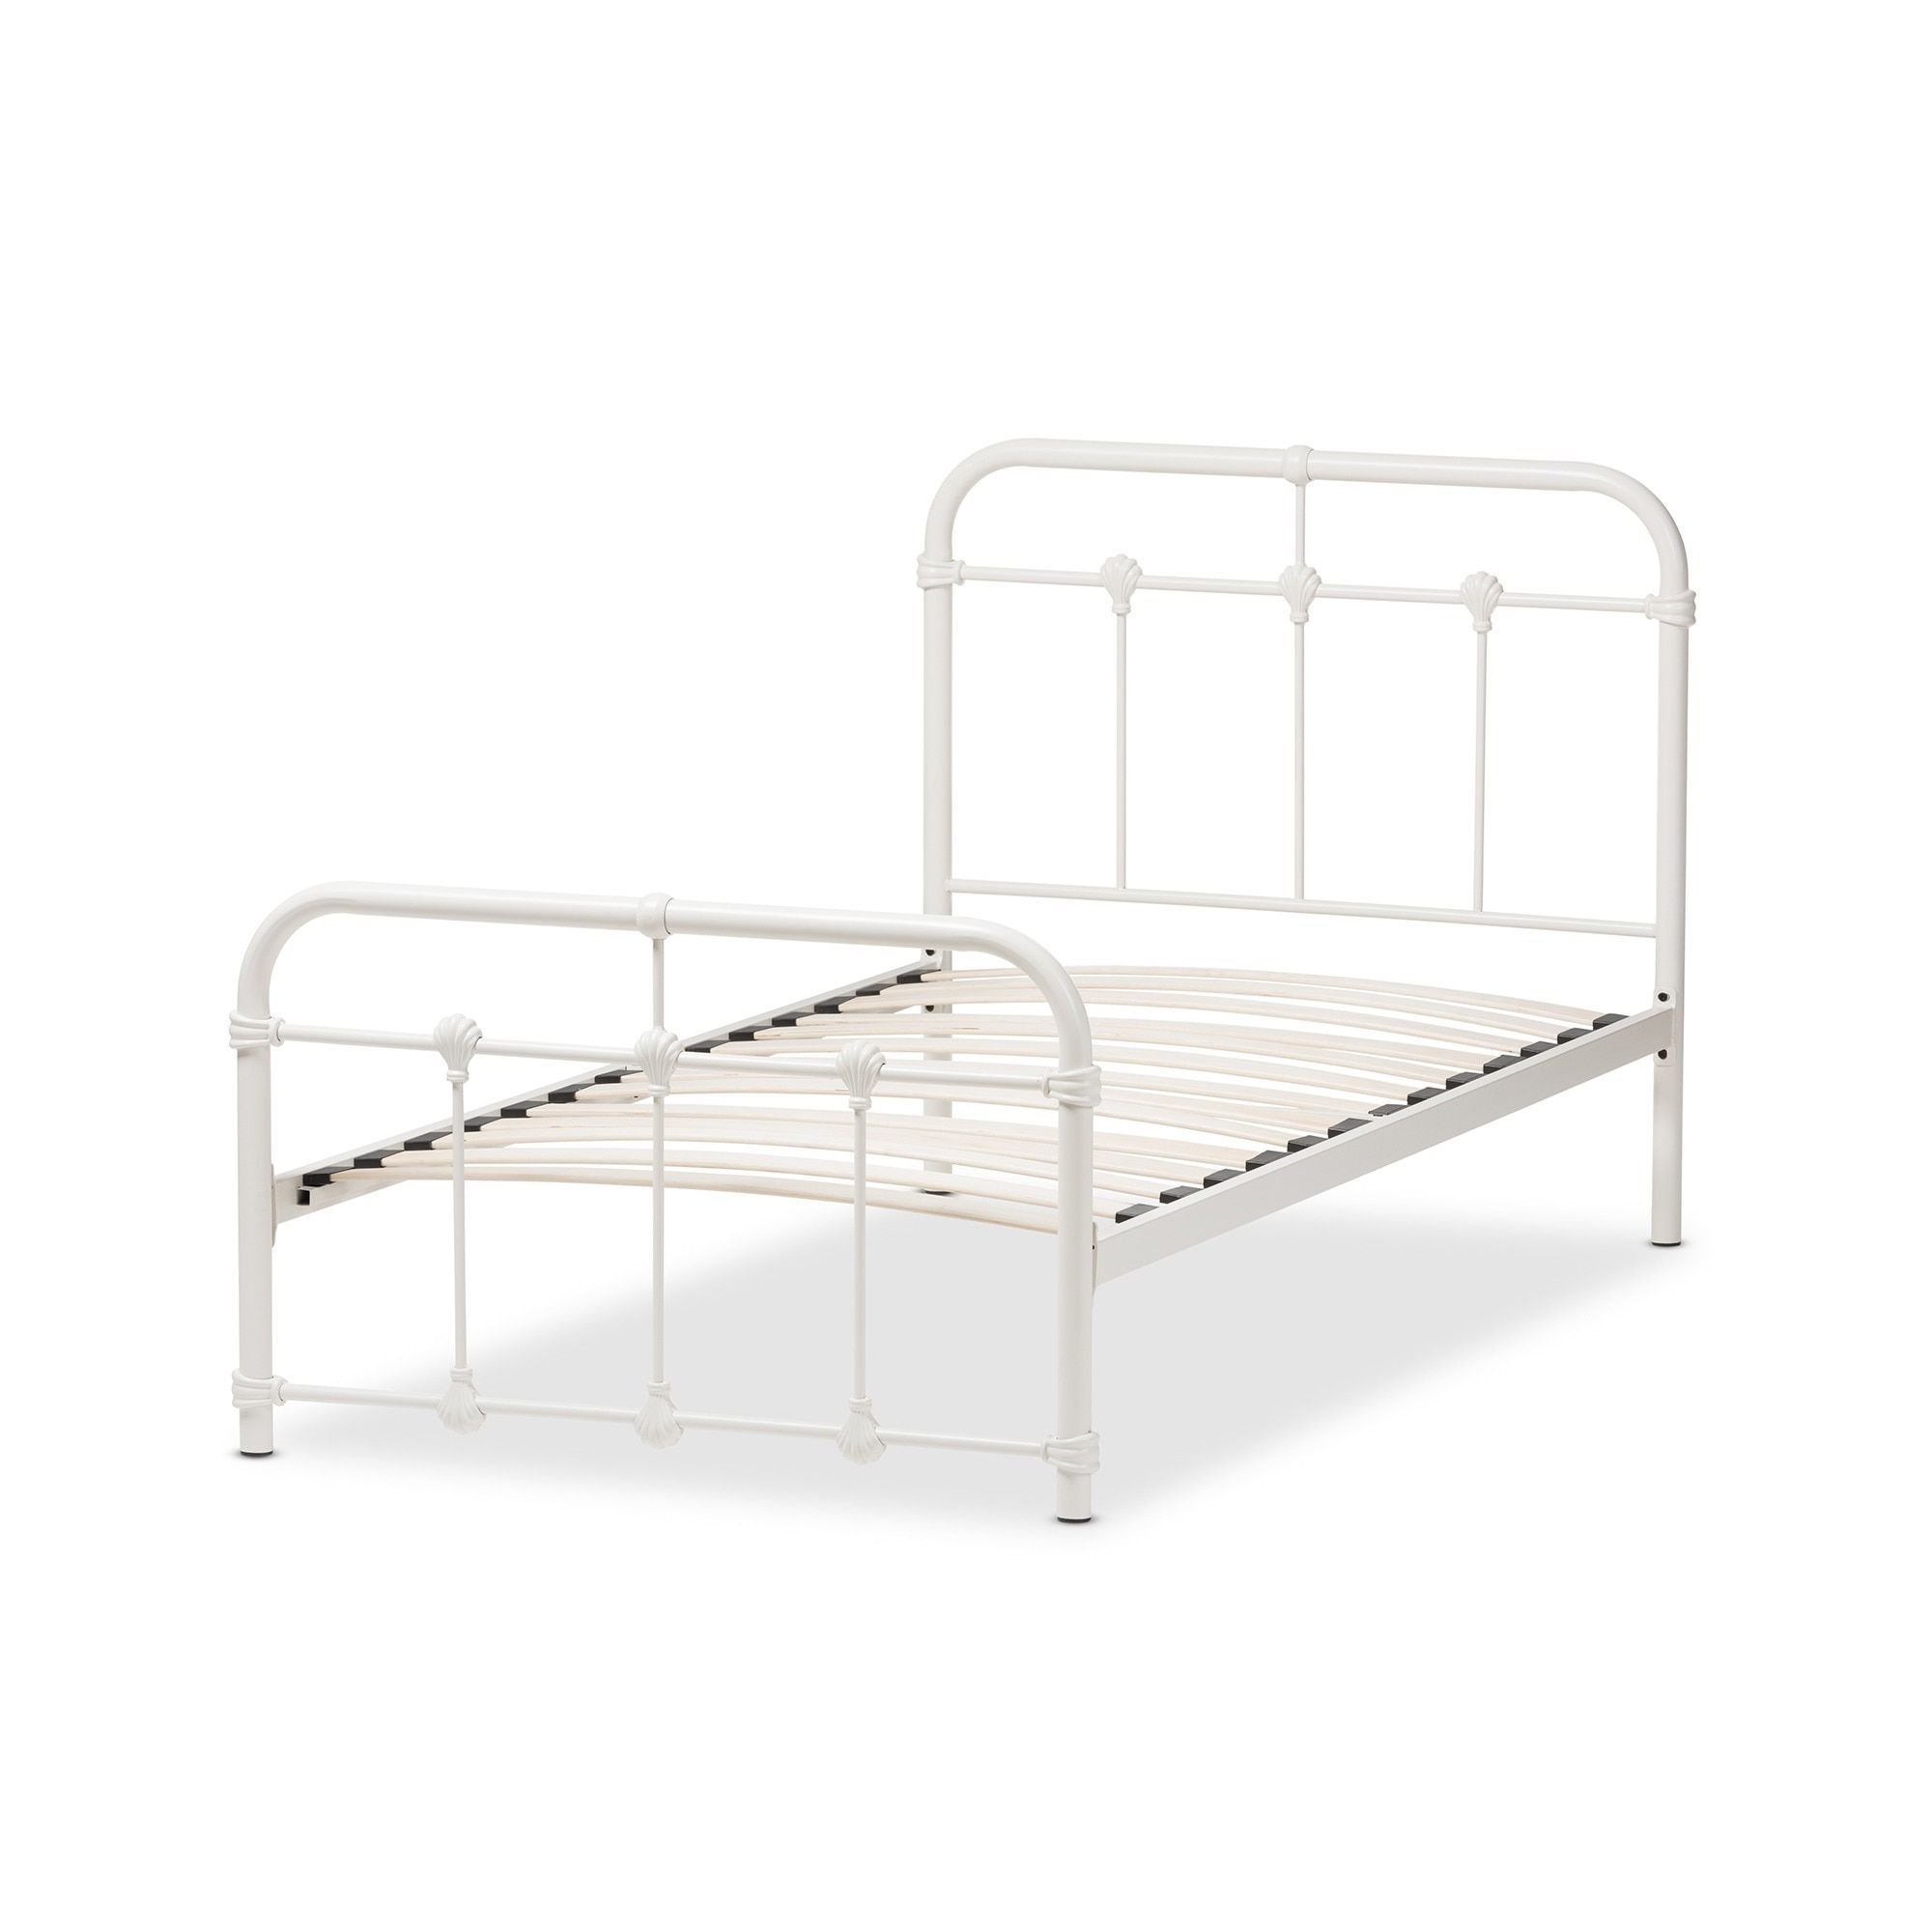 frame fram elegant contemporary and wood decor on profile platform king intended decofurnish bed size for katalog metal modern inch low